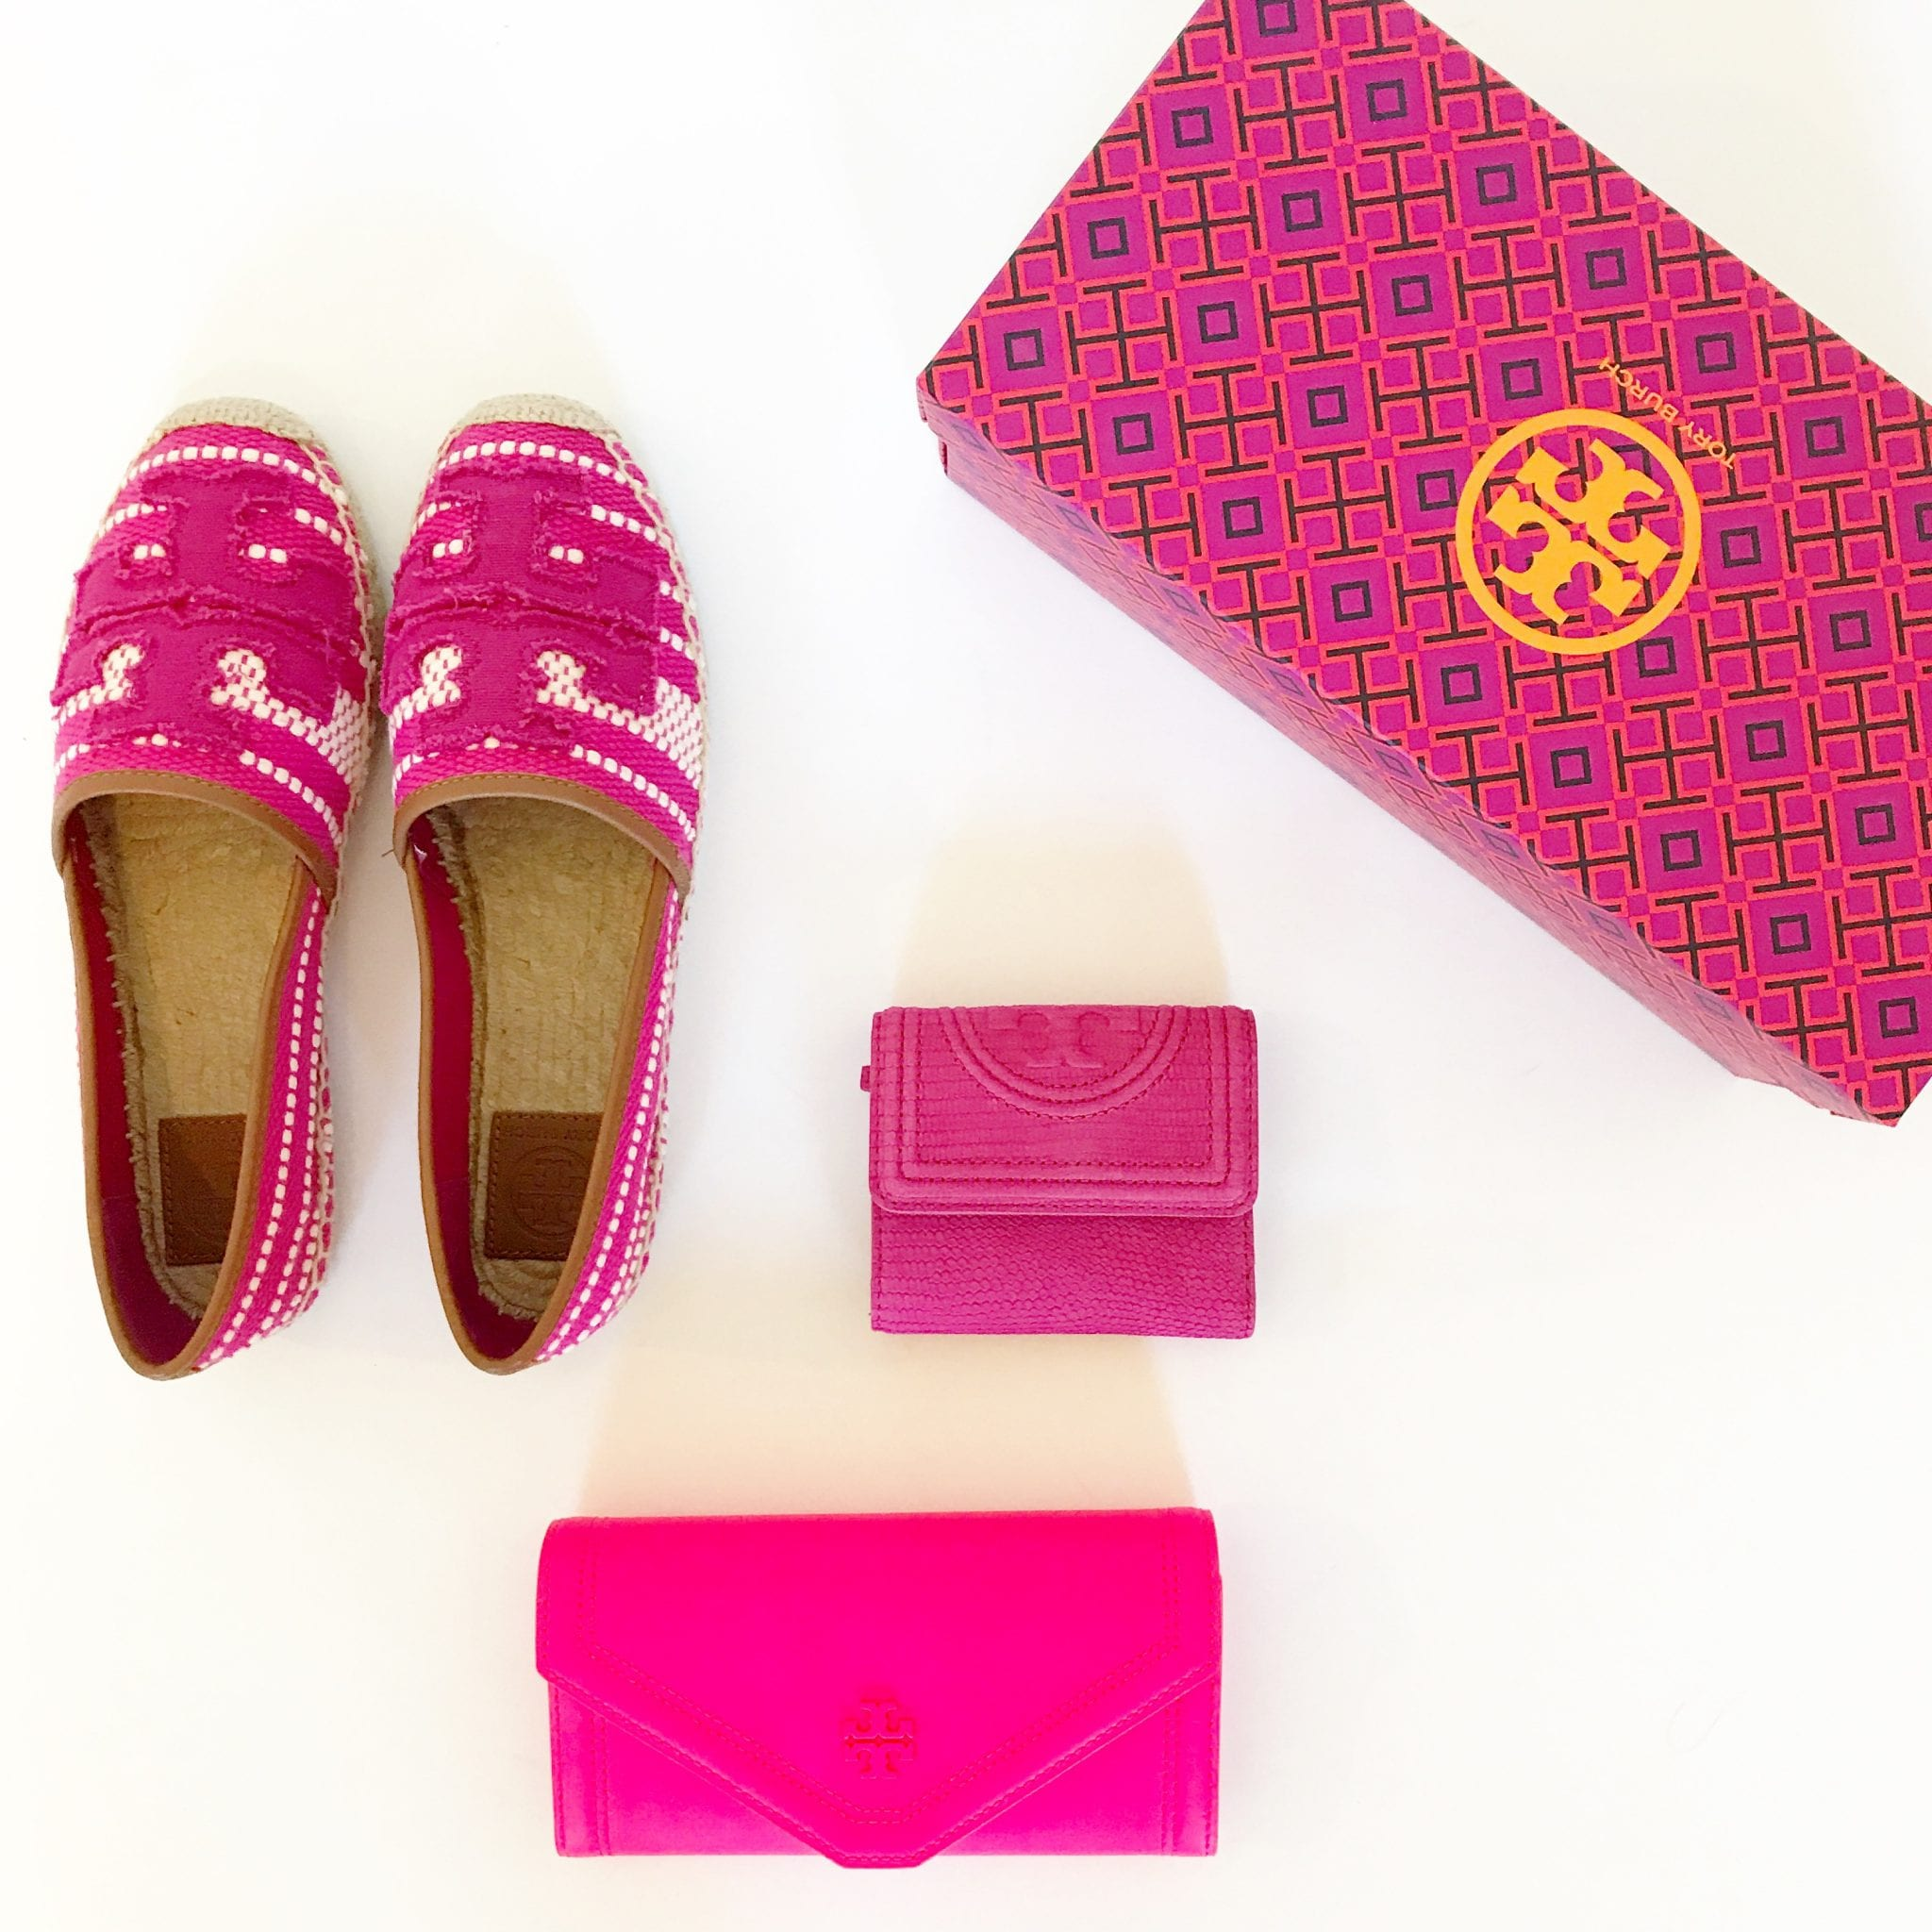 78afe1a1e SALE ALERT  Tory Burch Extra 30% Off Sale Prices